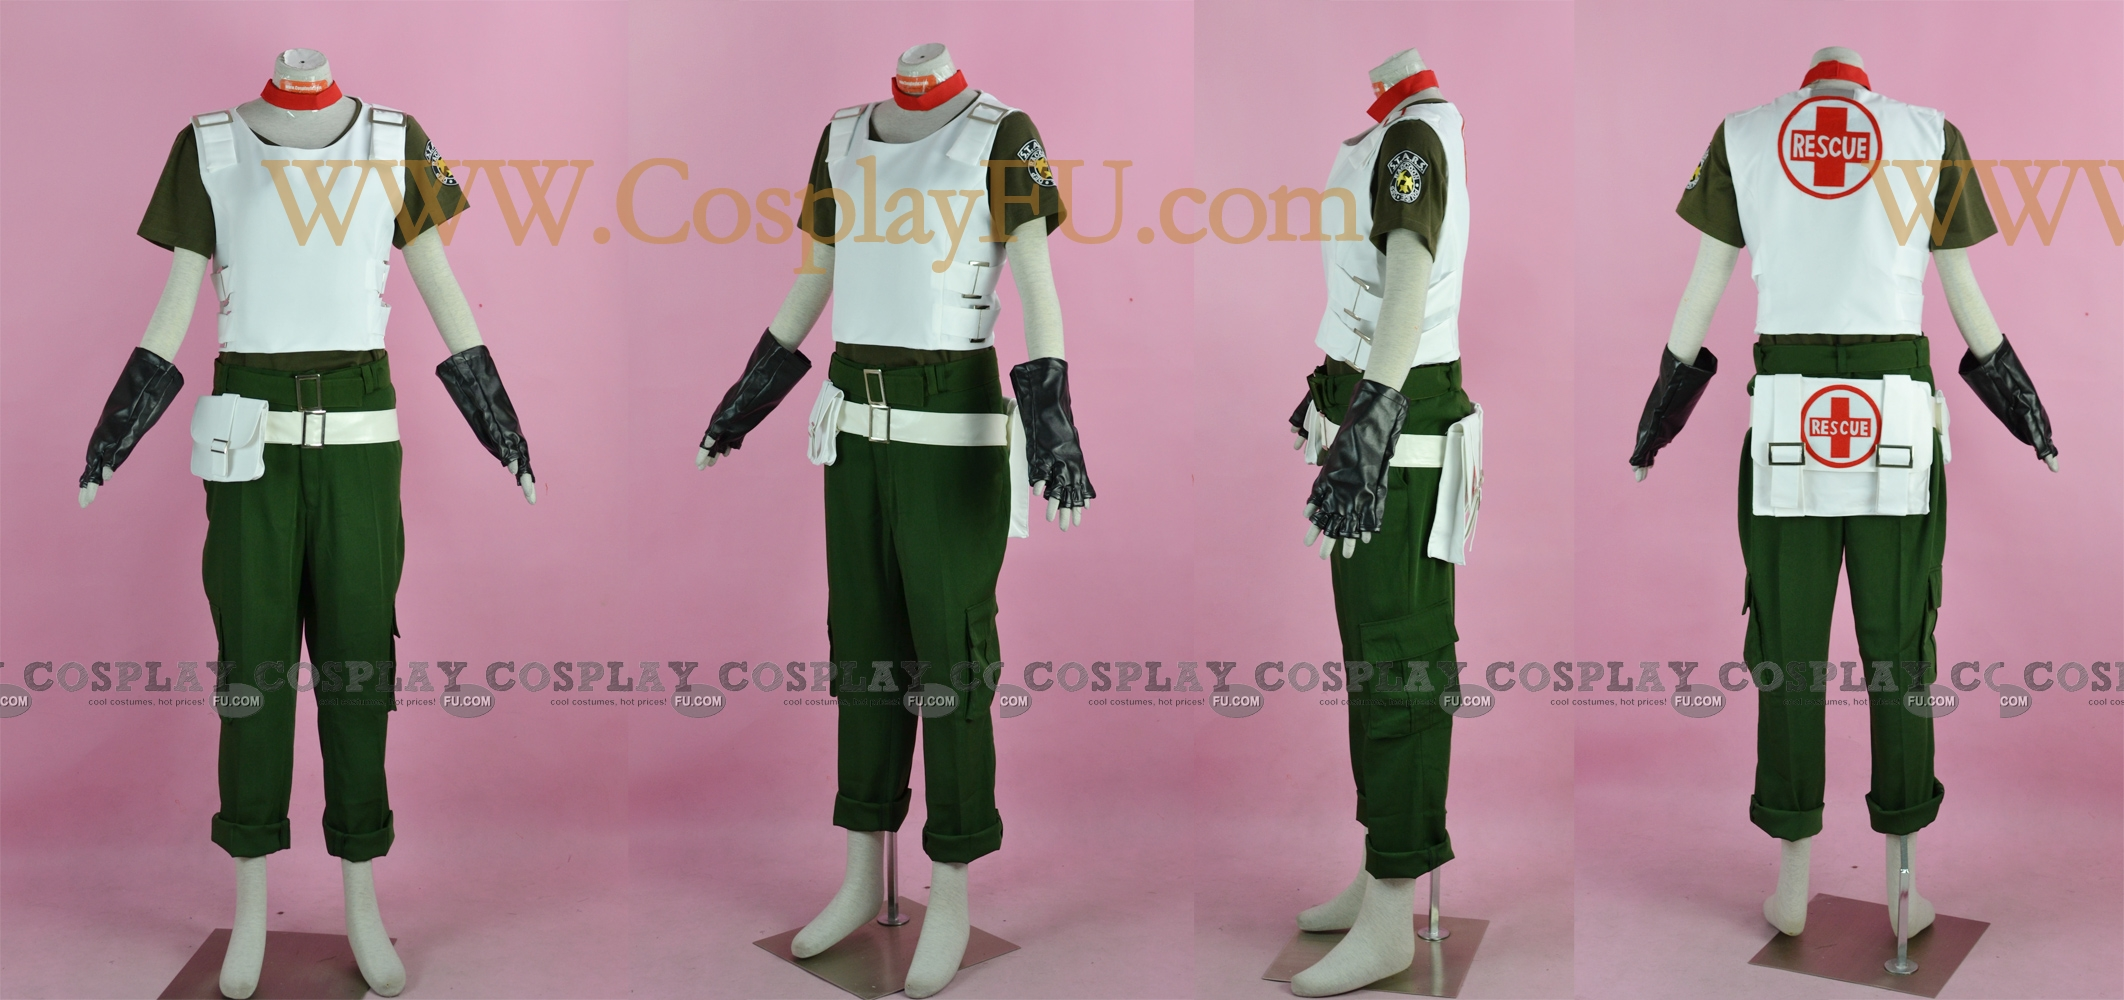 Rebecca Cosplay Costume from Resident Evil